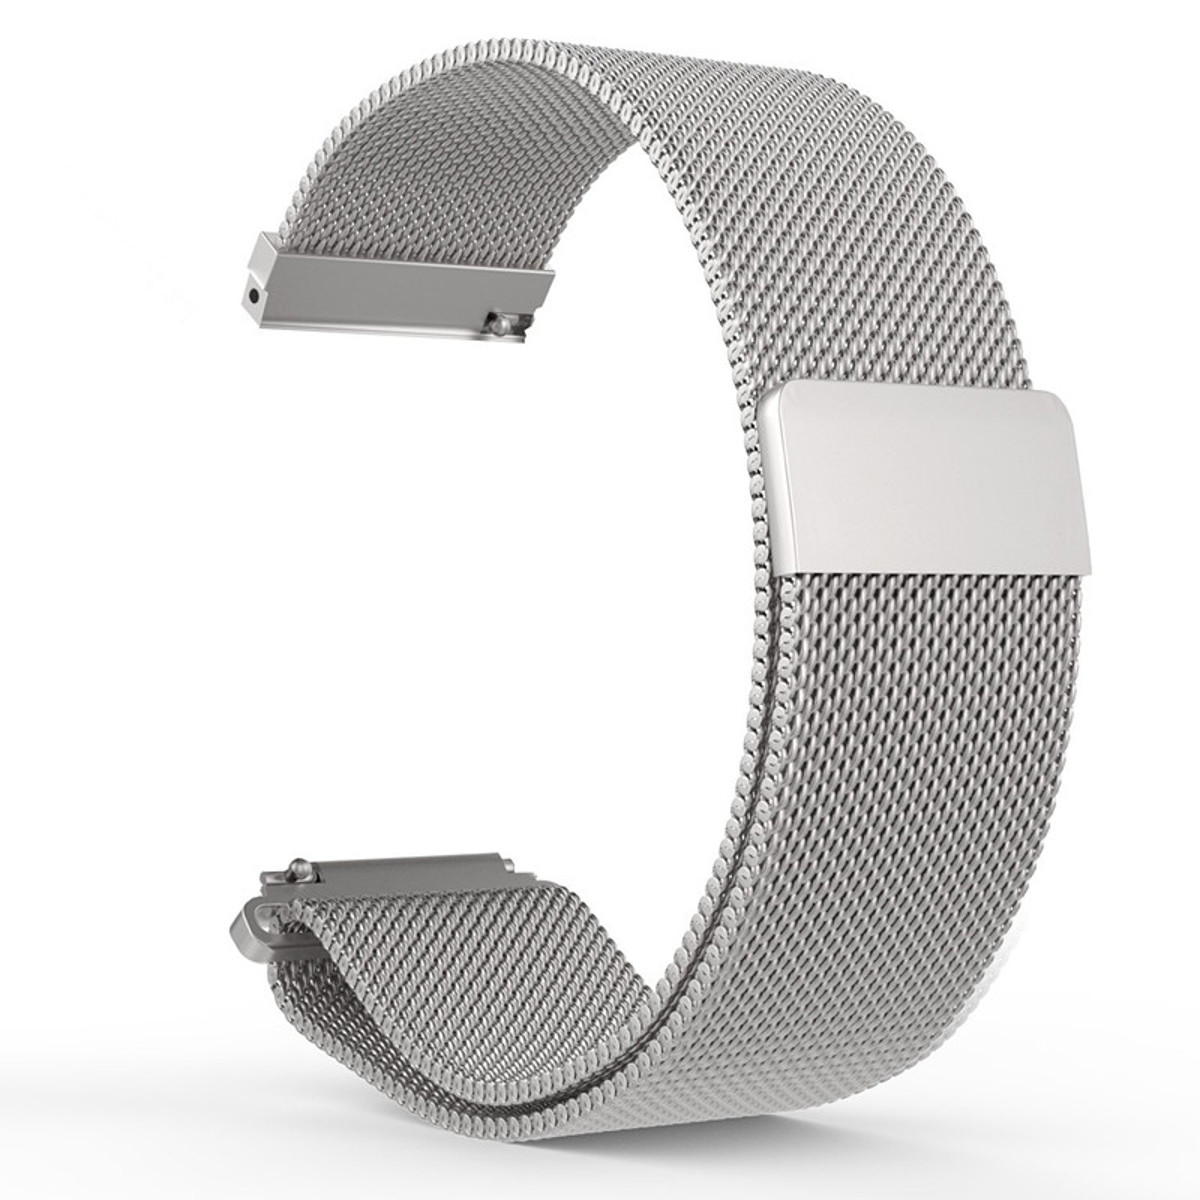 Milanese Loop Strap 20mm Stainless Steel Watchband Wrist Bracelet Quick Release Pins With Magnetic Buckle For/Huawei Smart Watch crested luxury magnetic milanese loop wrist strap